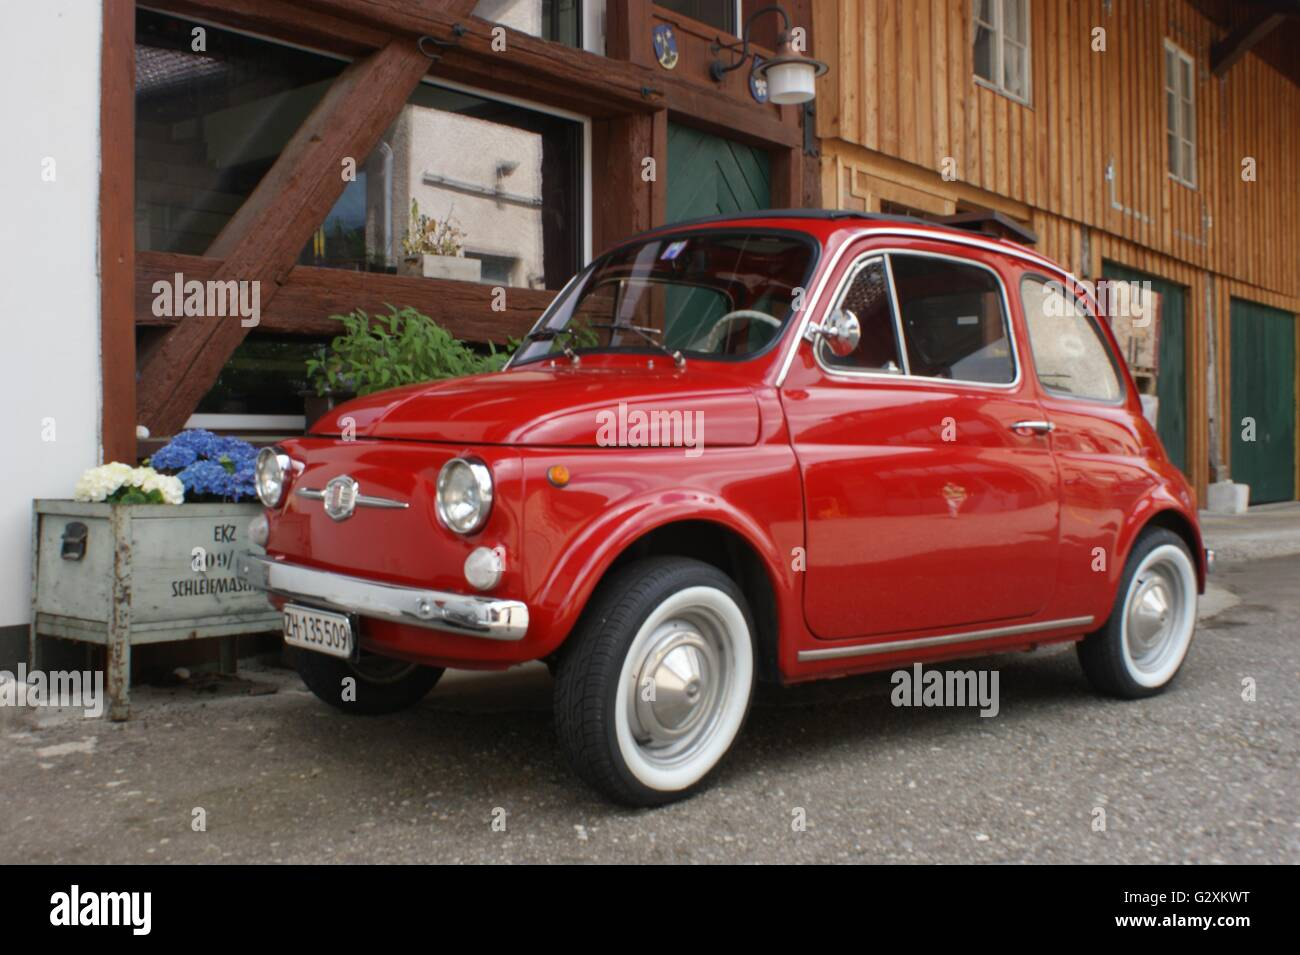 sony dsc red fiat 500 minicar whitewall tires in switzerland canton zurich